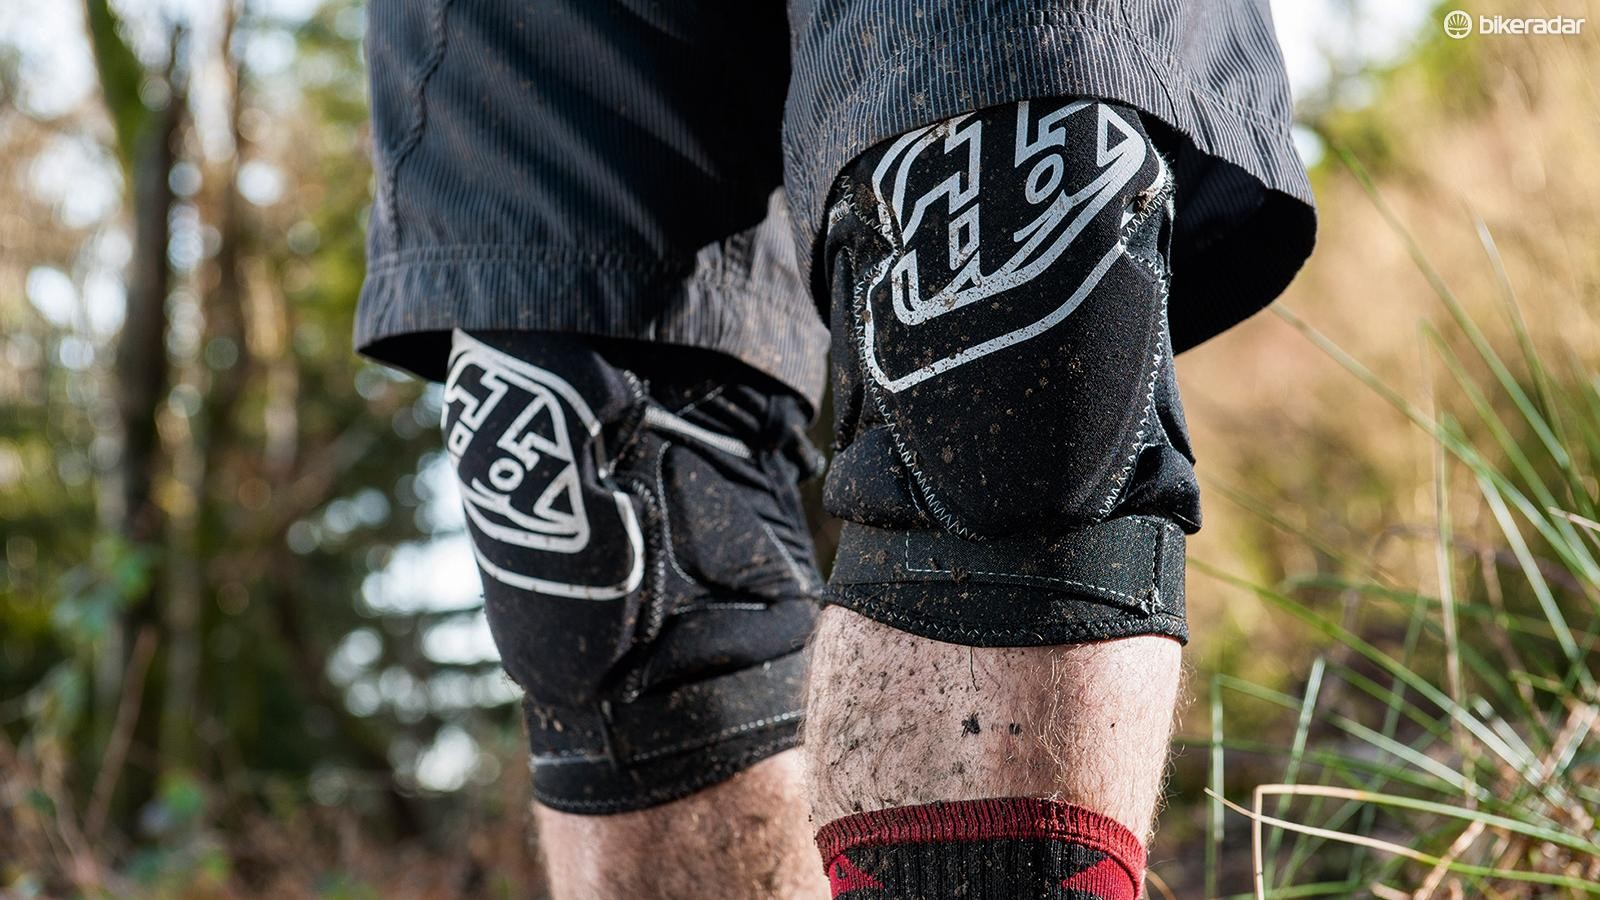 Troy Lee Designs T-Bone knee pads